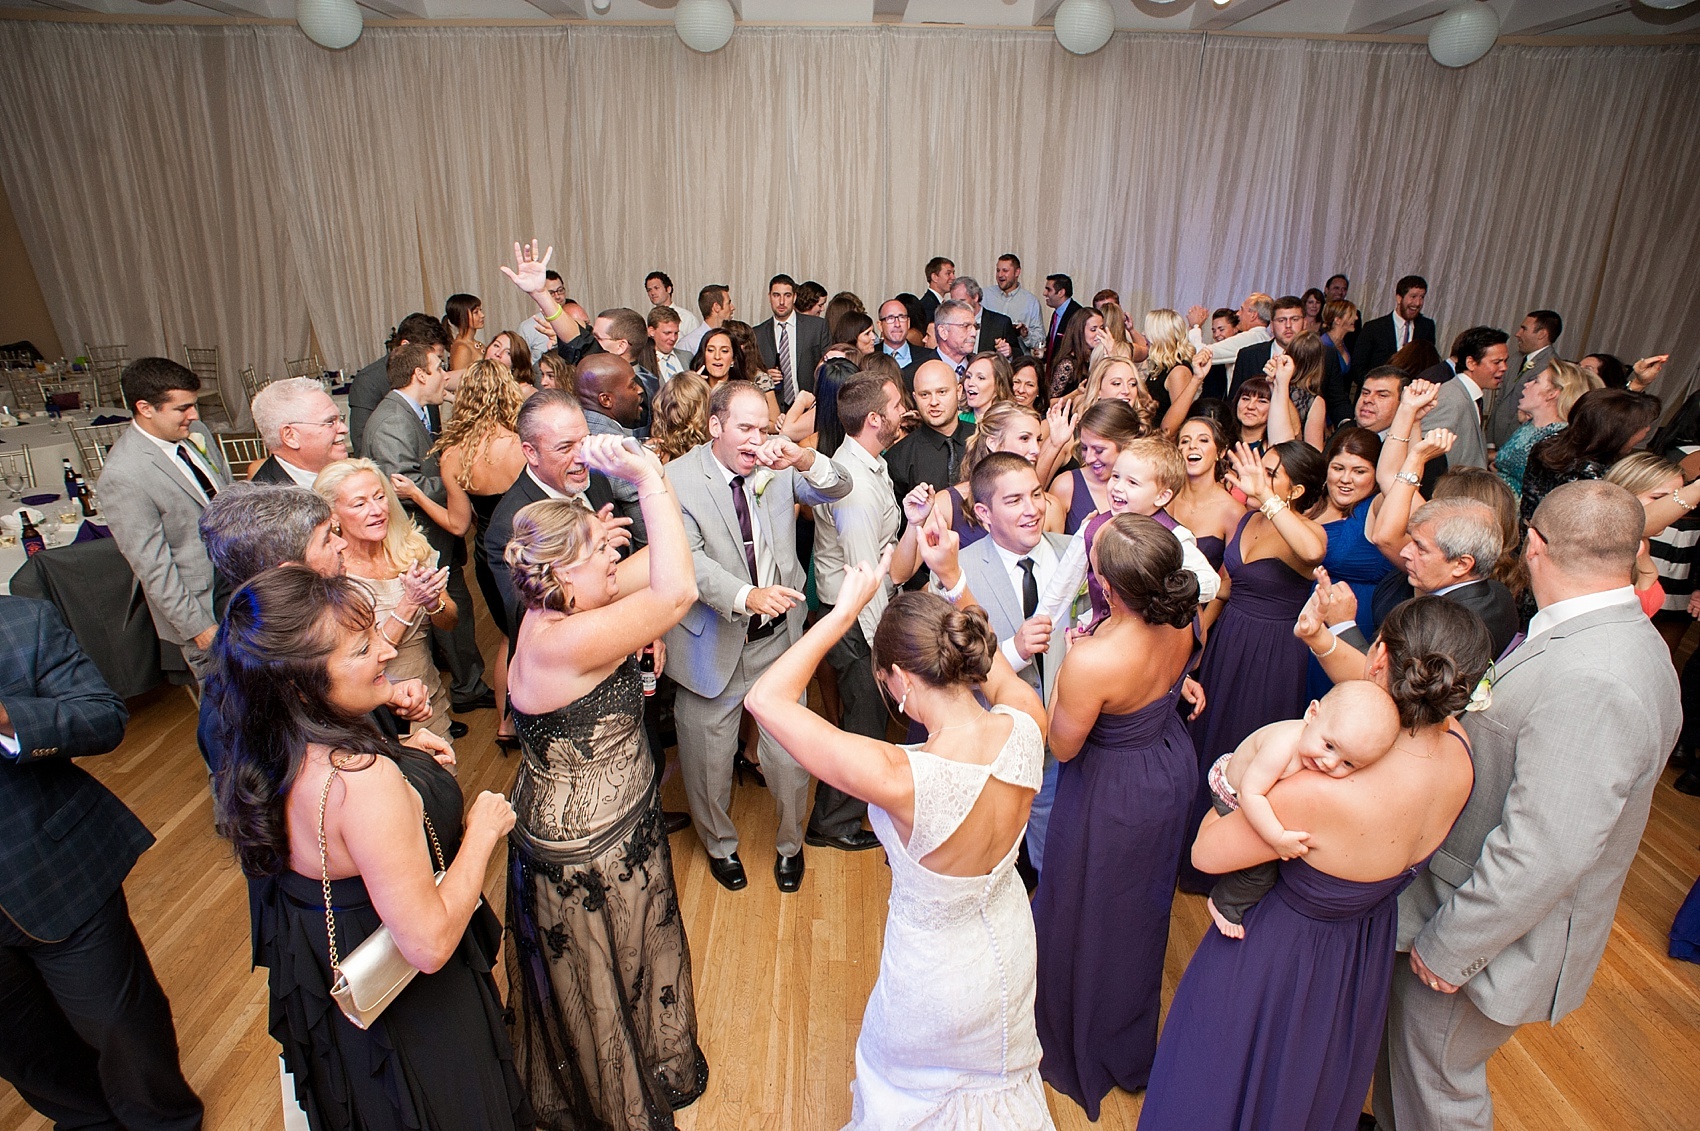 Wedding at The Center, downtown Cincinnati, Ohio. Photos by Mikkel Paige Photography.